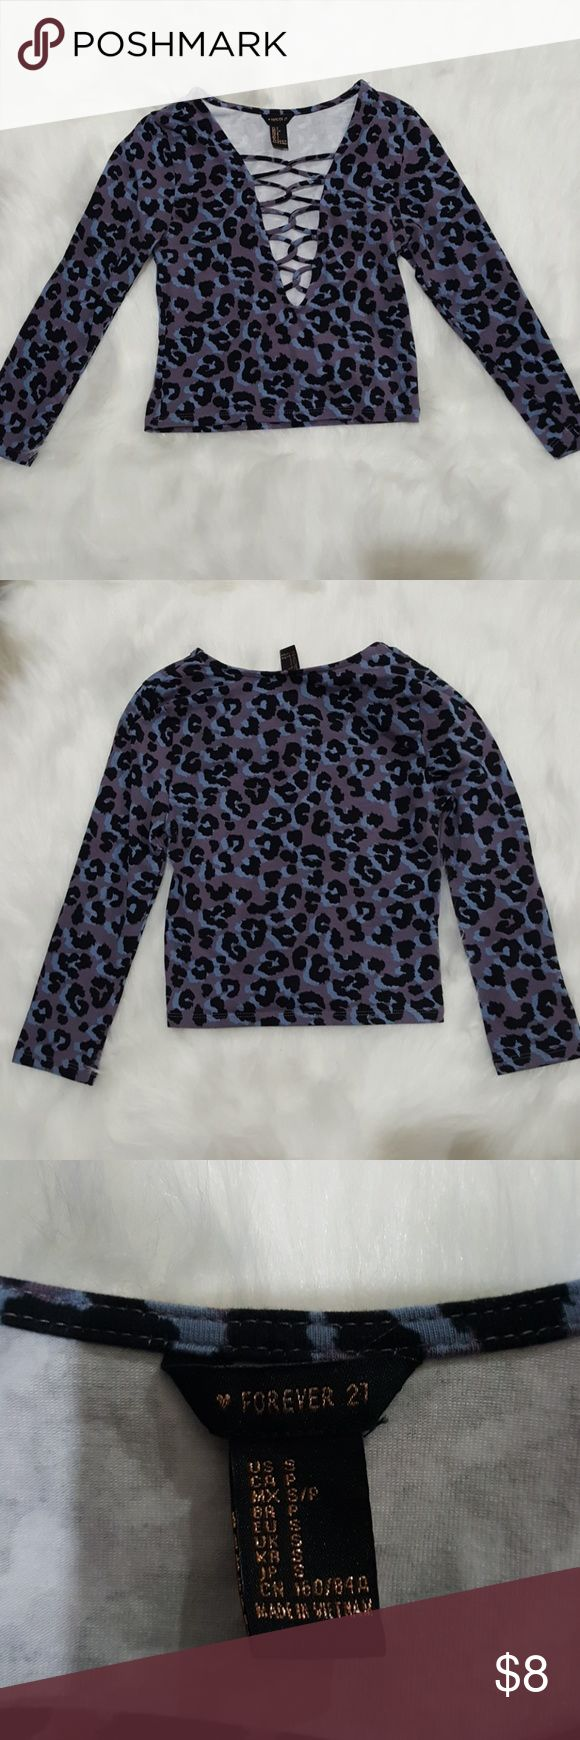 Cute Animal Print Crop Top Size Small Forever 21 crop top in excellent condition in a size small. Would be excellent to pair with a black leather moto jacket and jeans, or even a black skirt. Forever 21 Tops Crop Tops